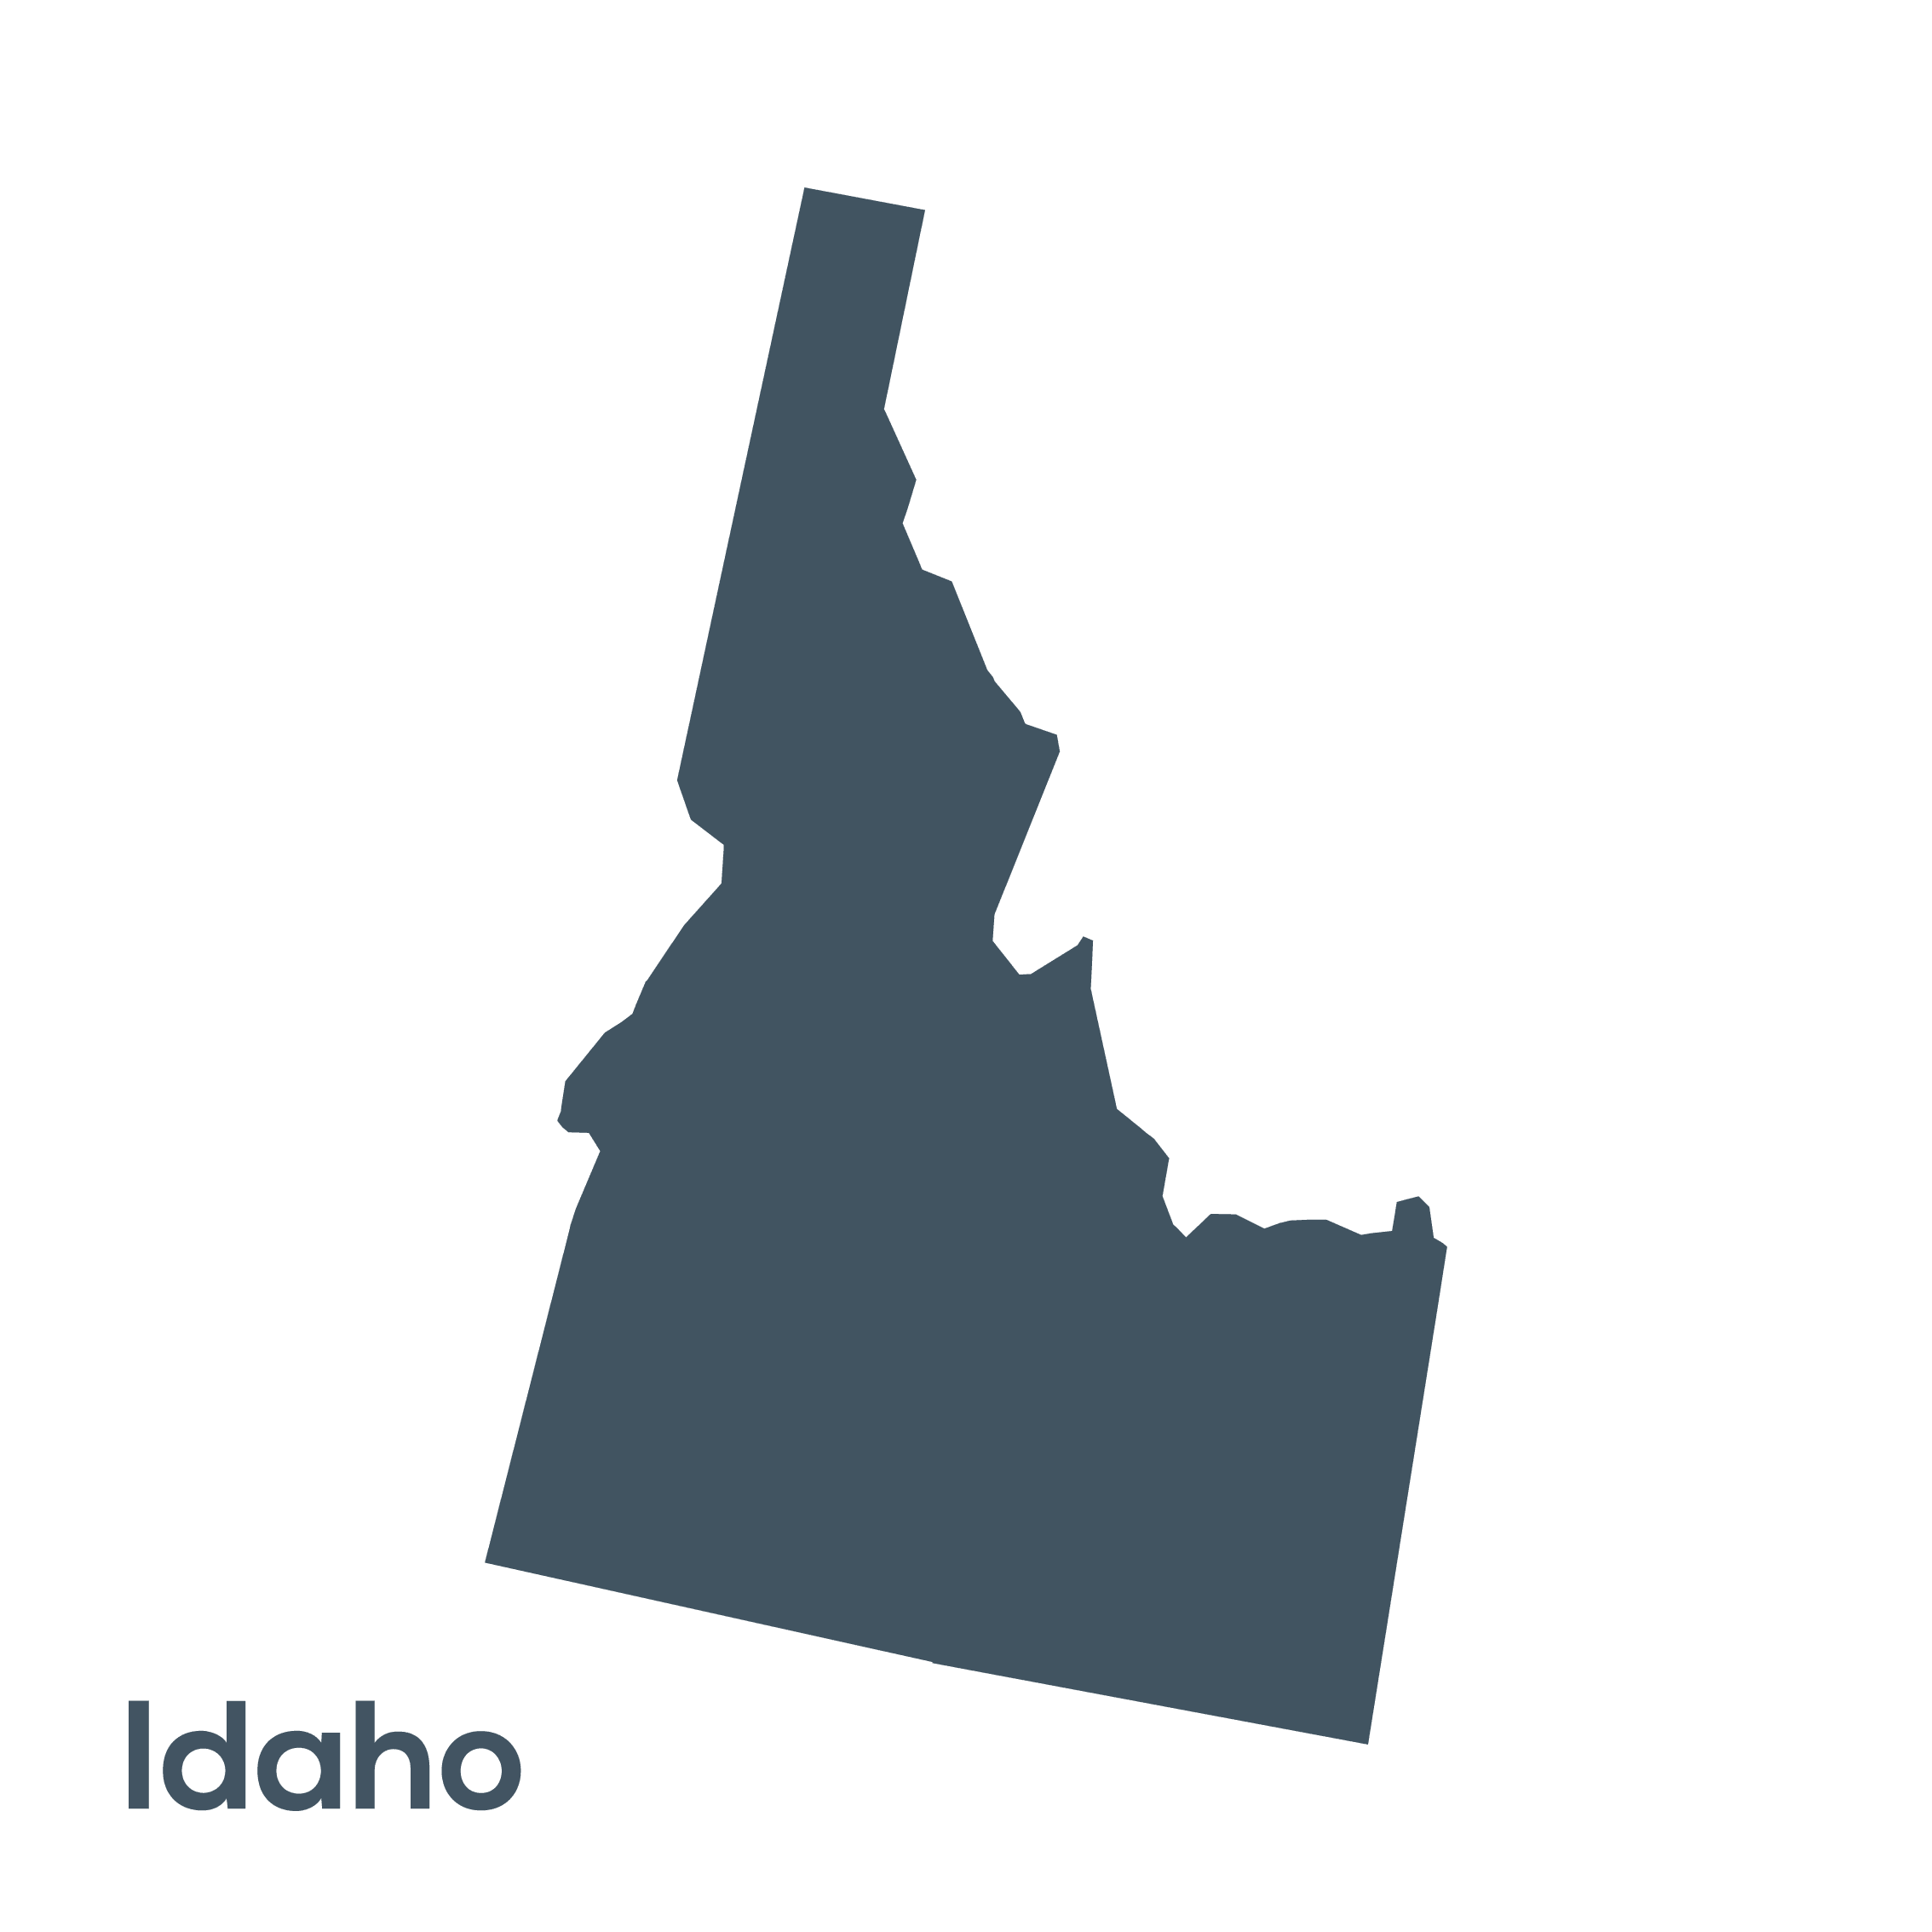 Idaho state clipart clipart library download U.S. States - Shapes and Names | Clipart | PBS LearningMedia clipart library download